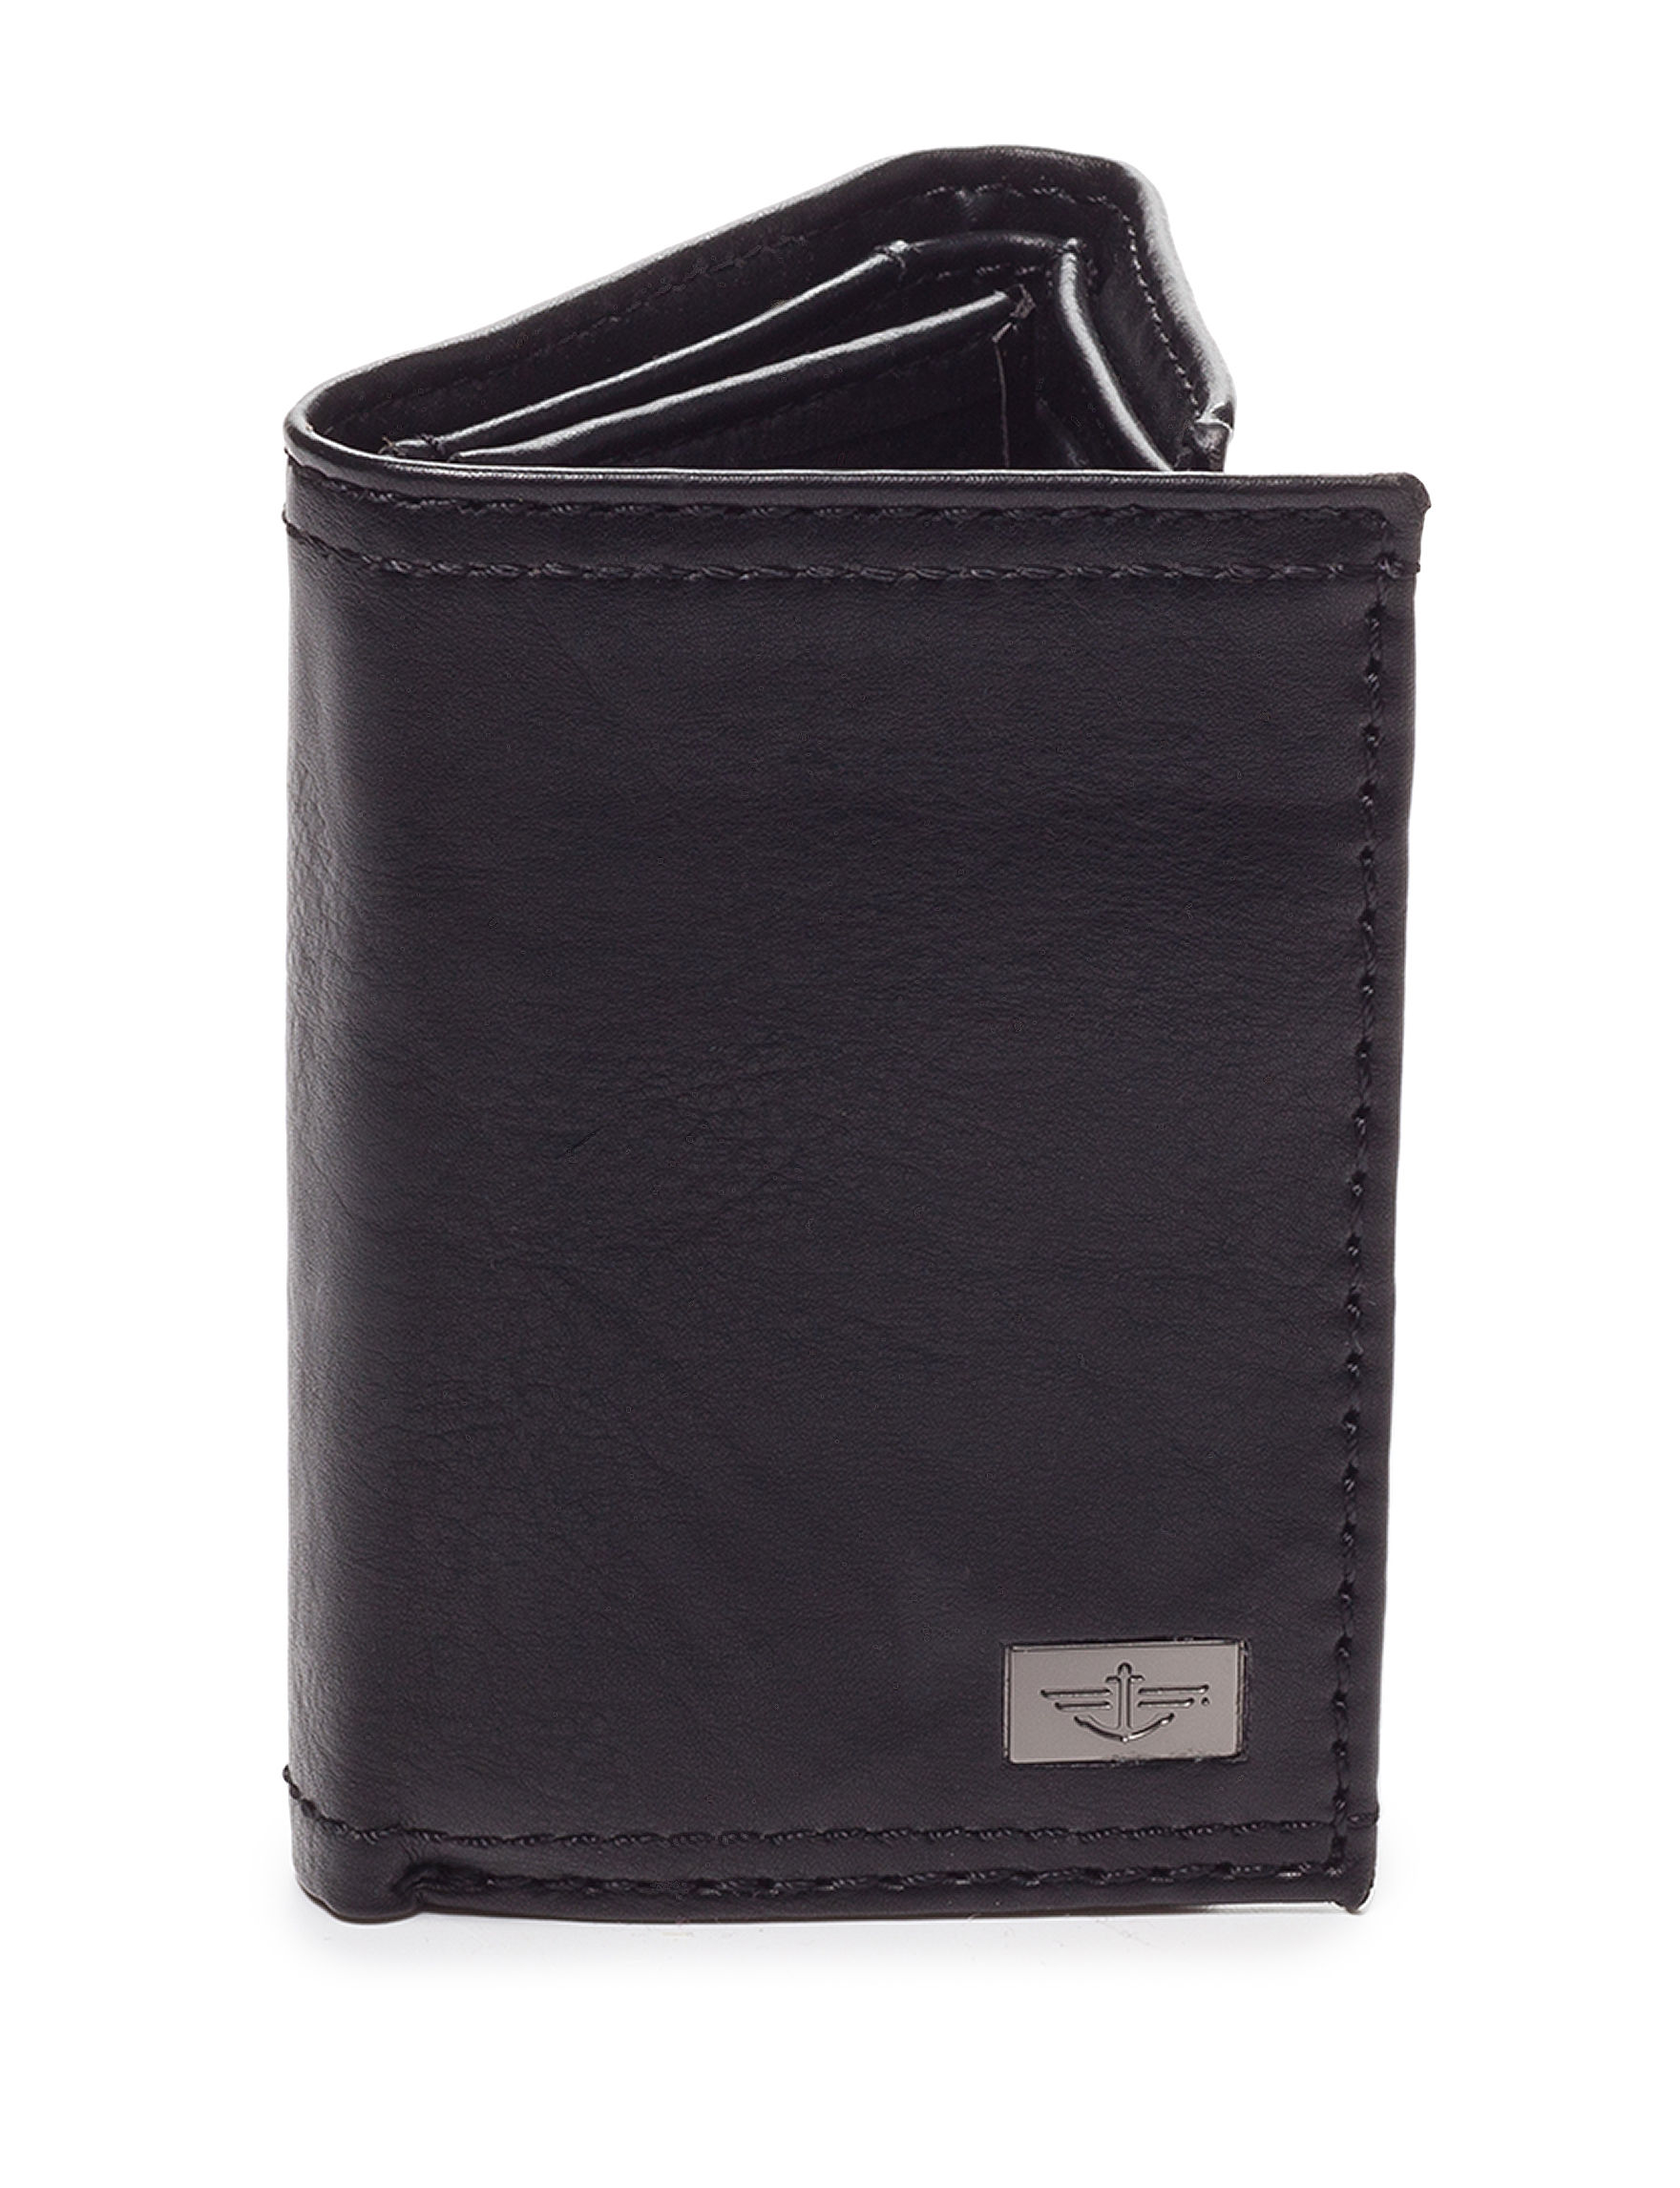 Dockers Black Tri-fold Wallets